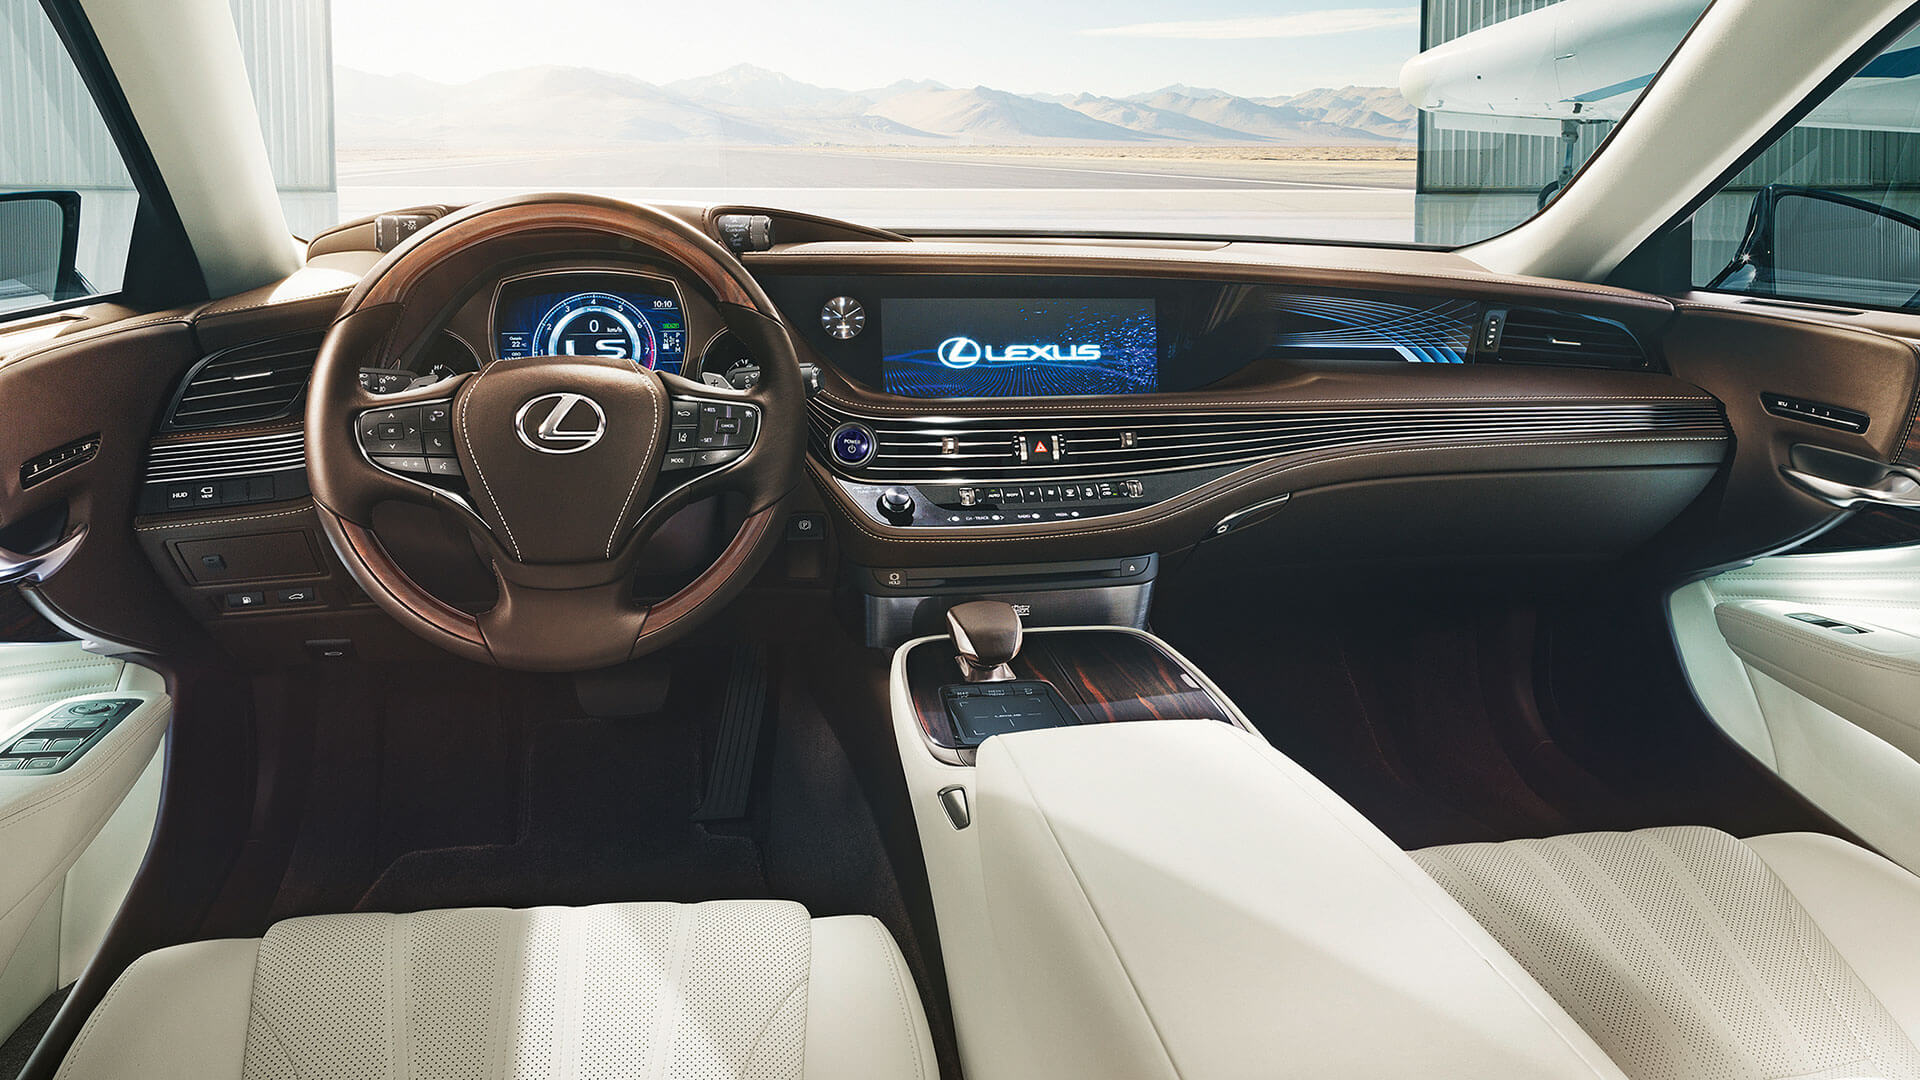 2018 lexus ls gallery 016 interior